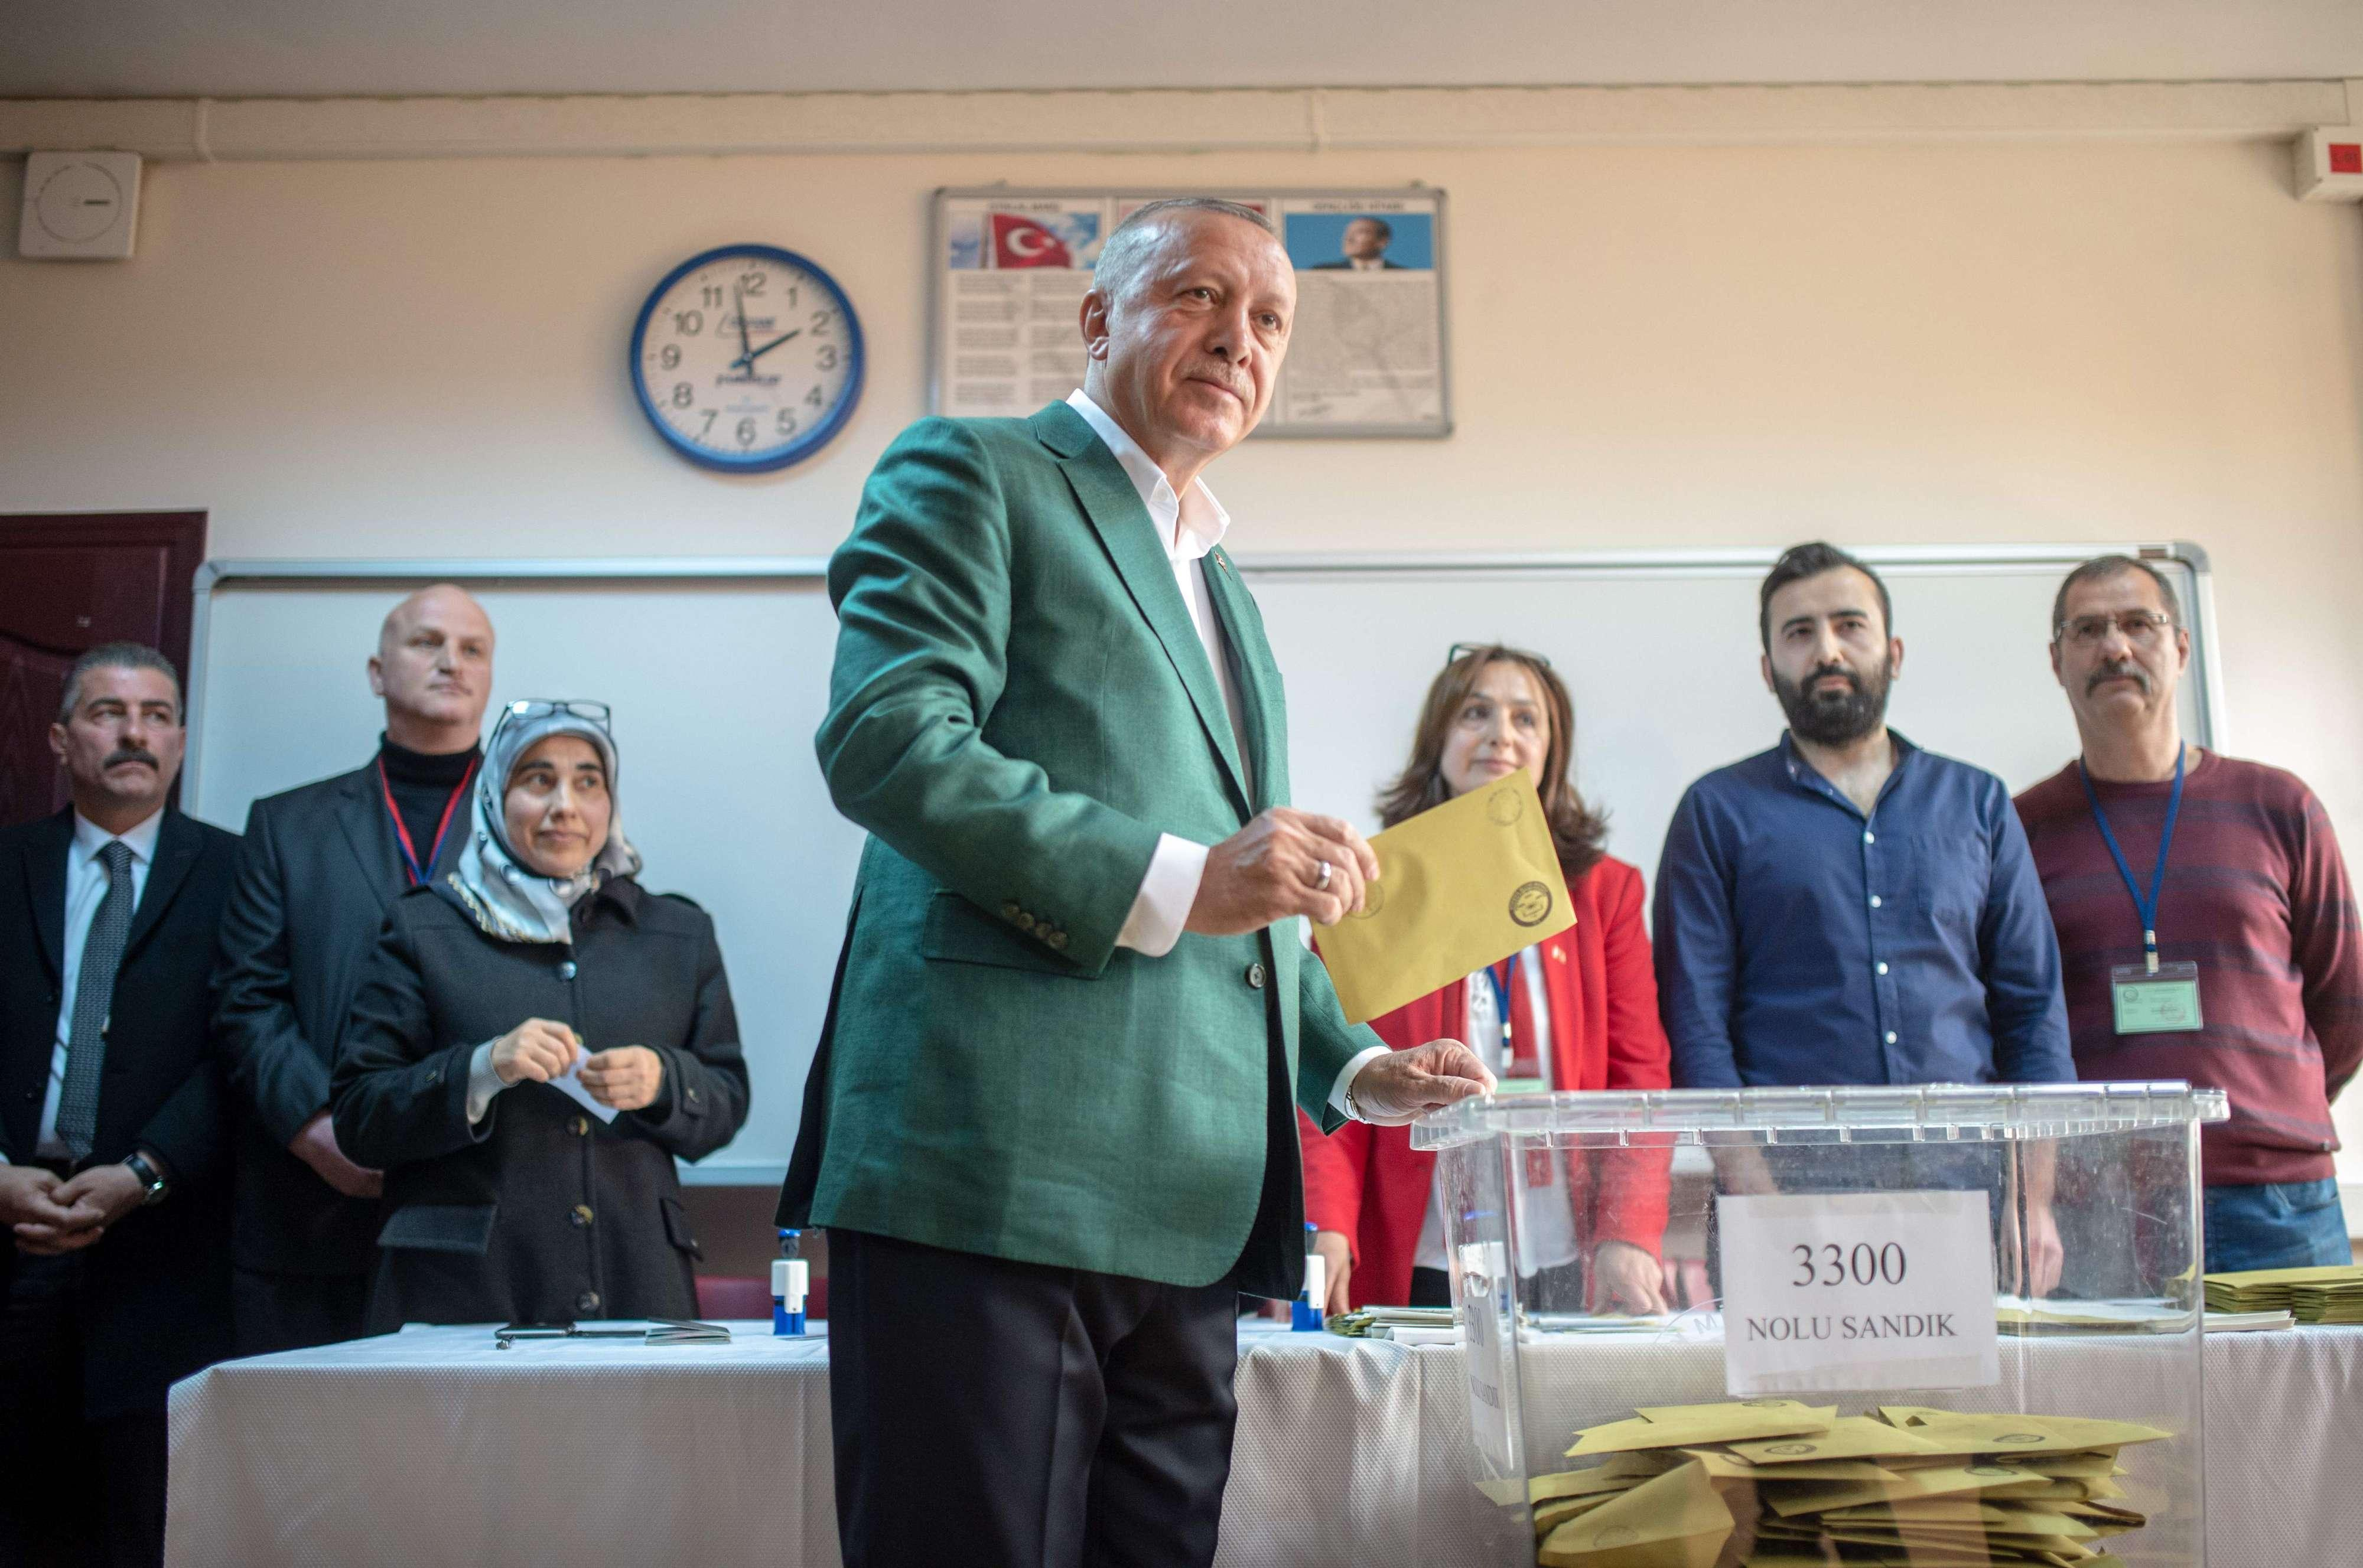 Turkish President Tayyip Erdogan (C) stands prior to cast his ballot at a polling station during the municipal elections in Istanbul.